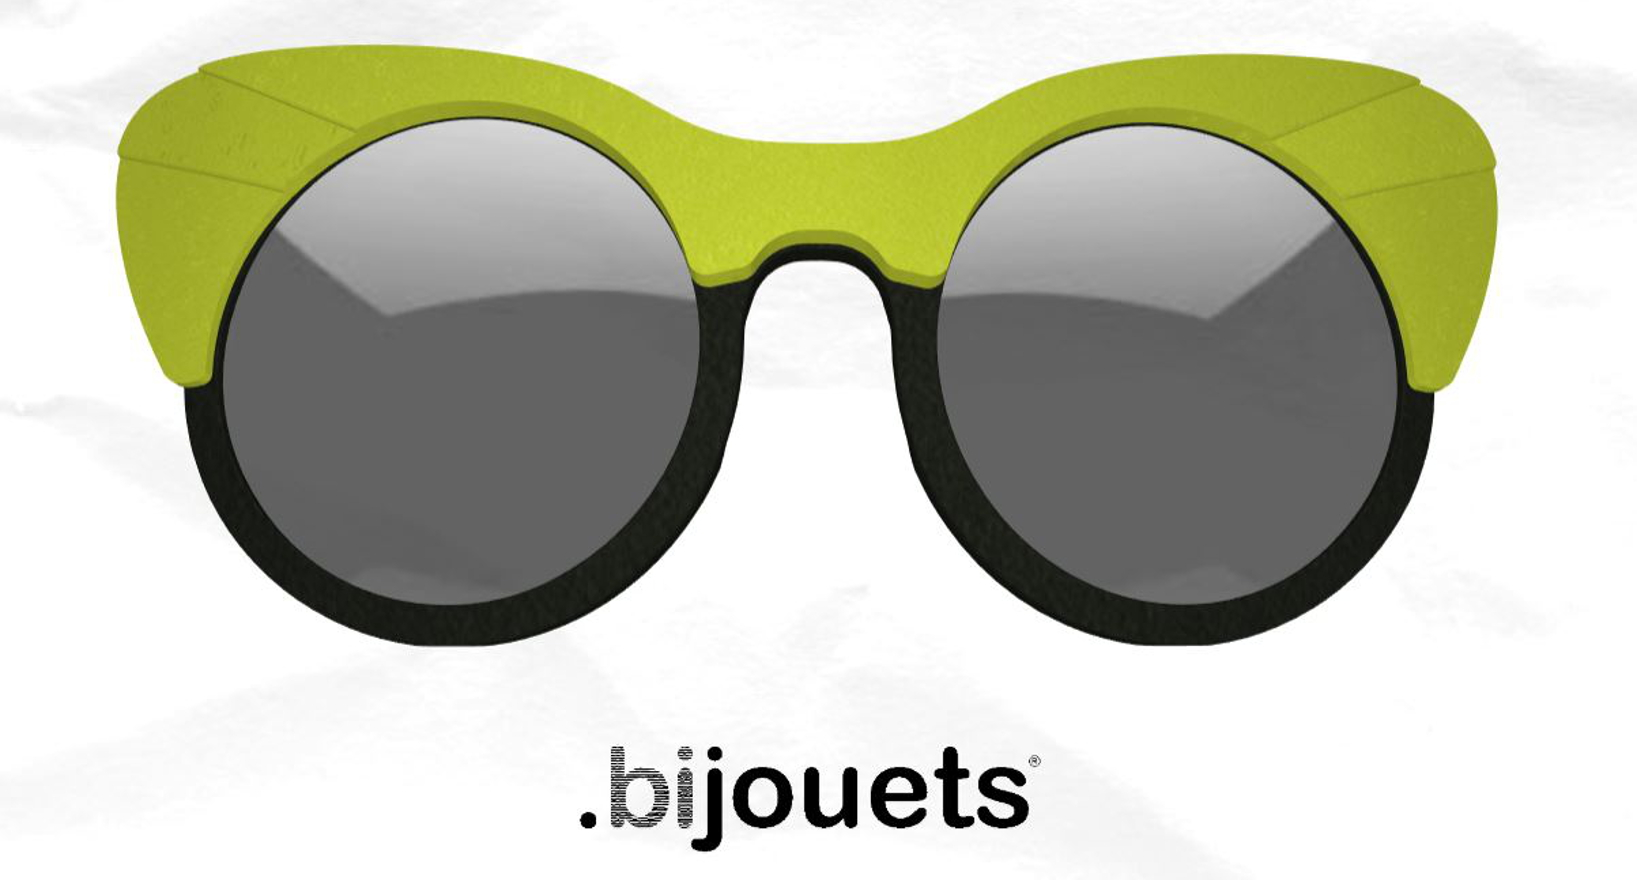 3D printed sunglasses Cambiami bijouets